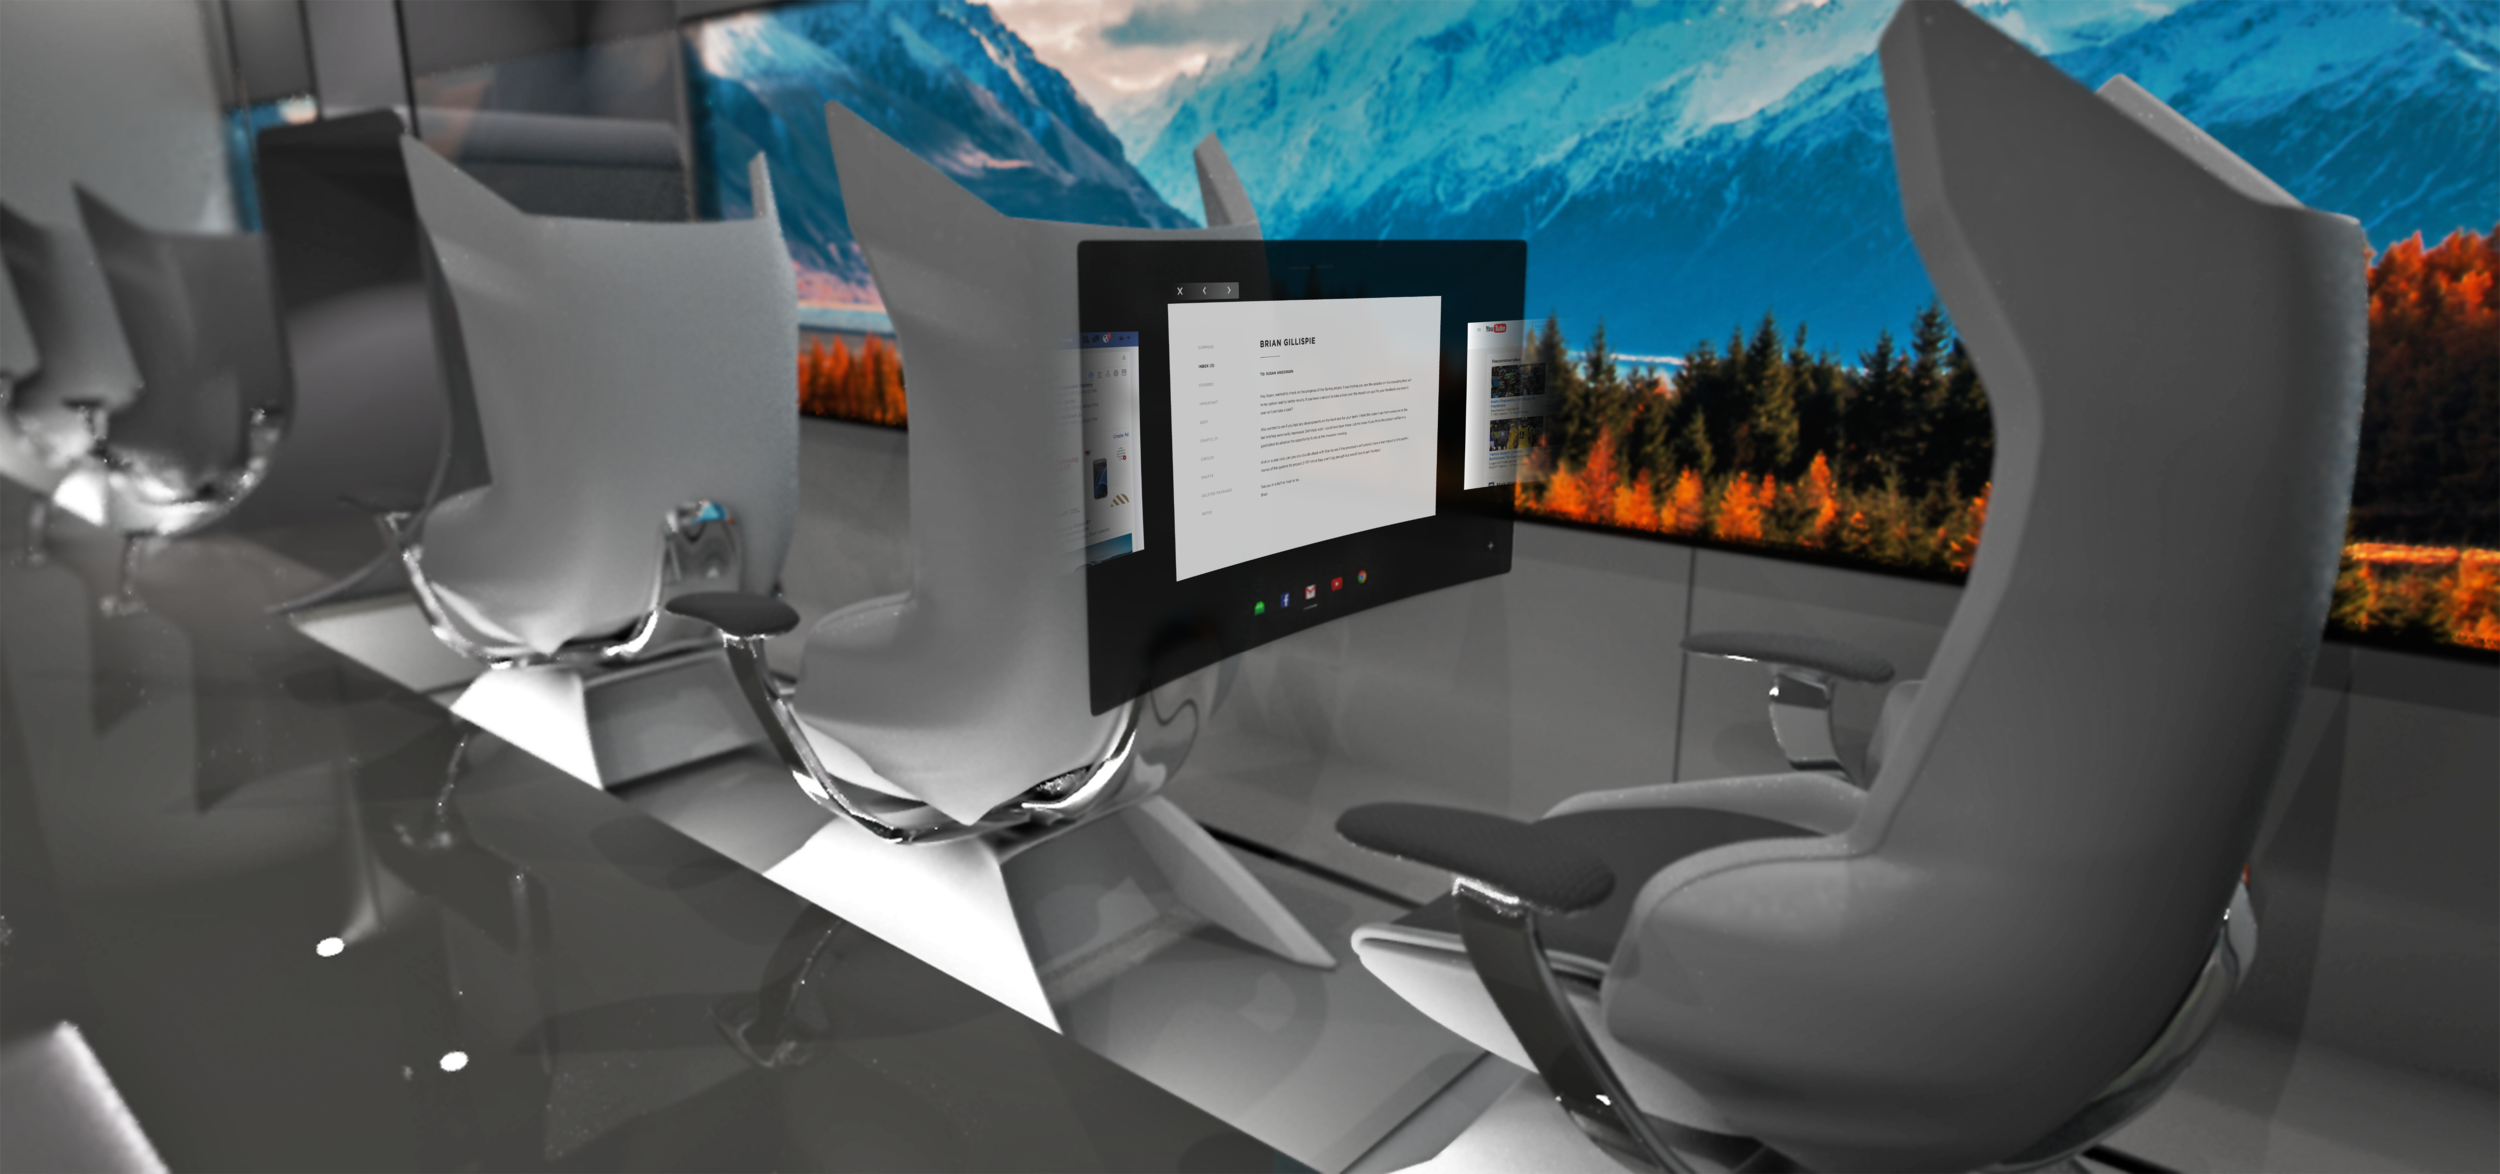 This design encourages an immersive user flow, without preventing people from interacting with those around them.